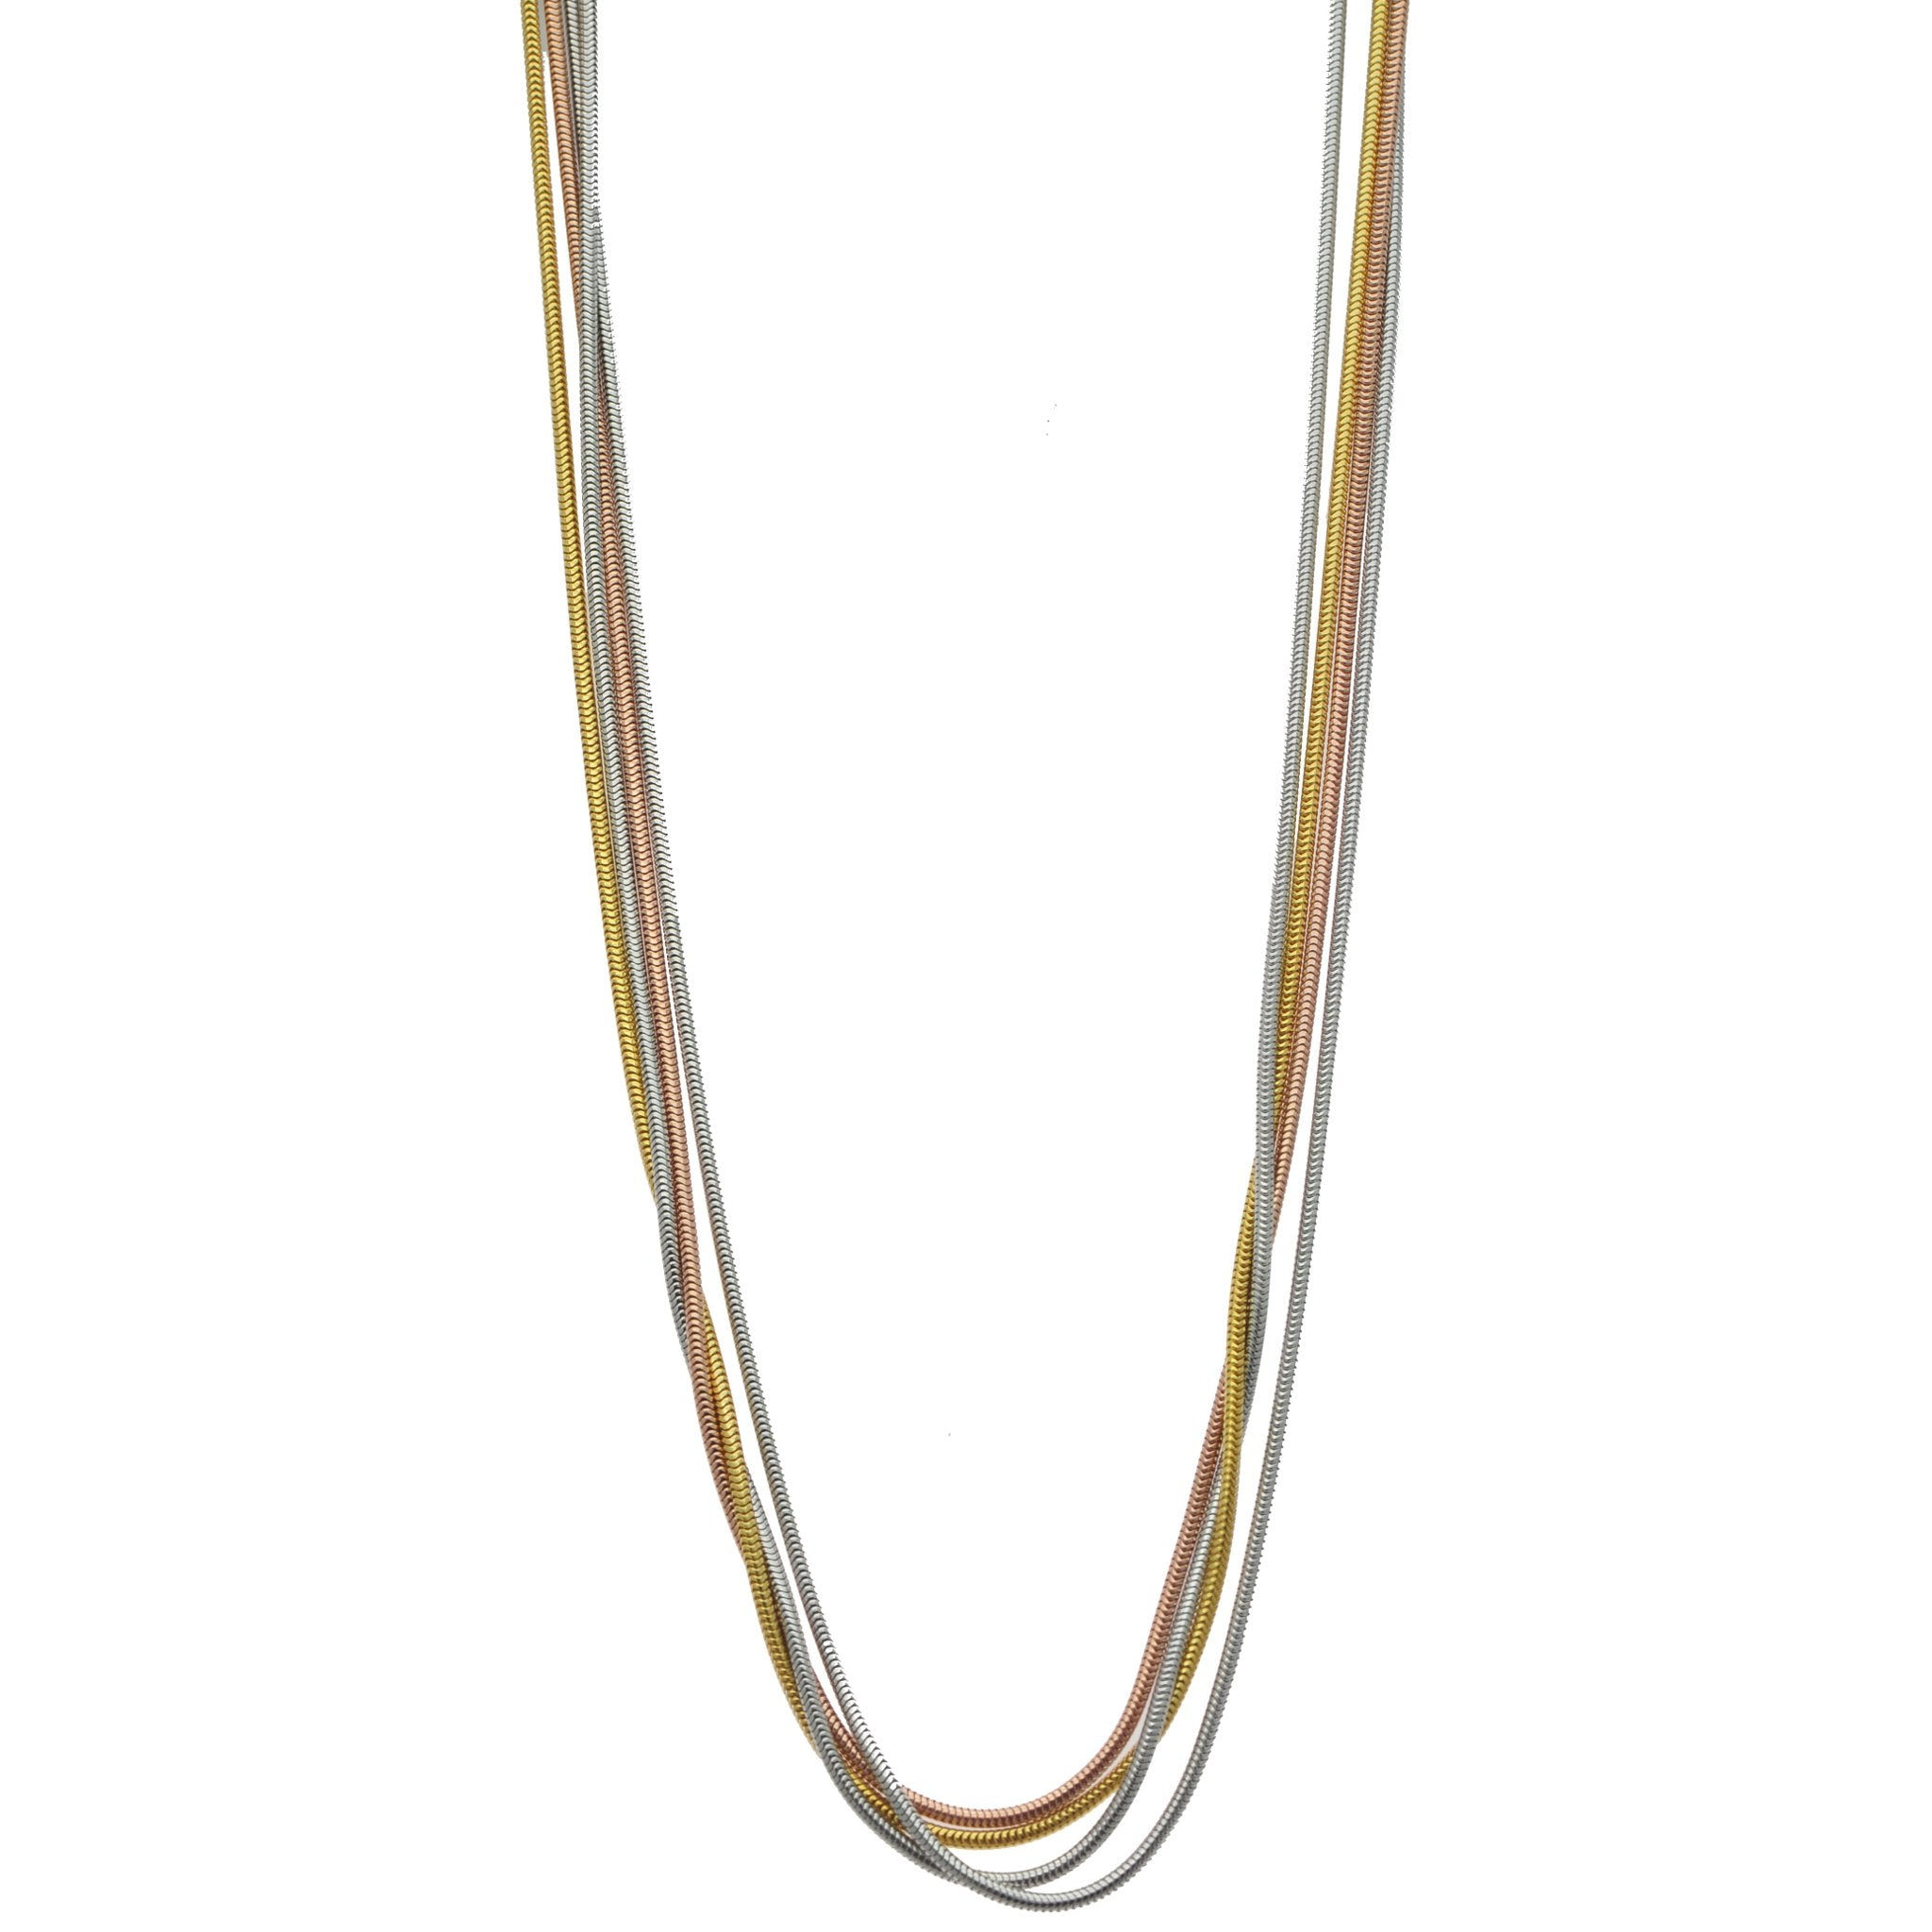 Rose Gold, Yellow Gold, and Sterling Silver Four Strand Necklace